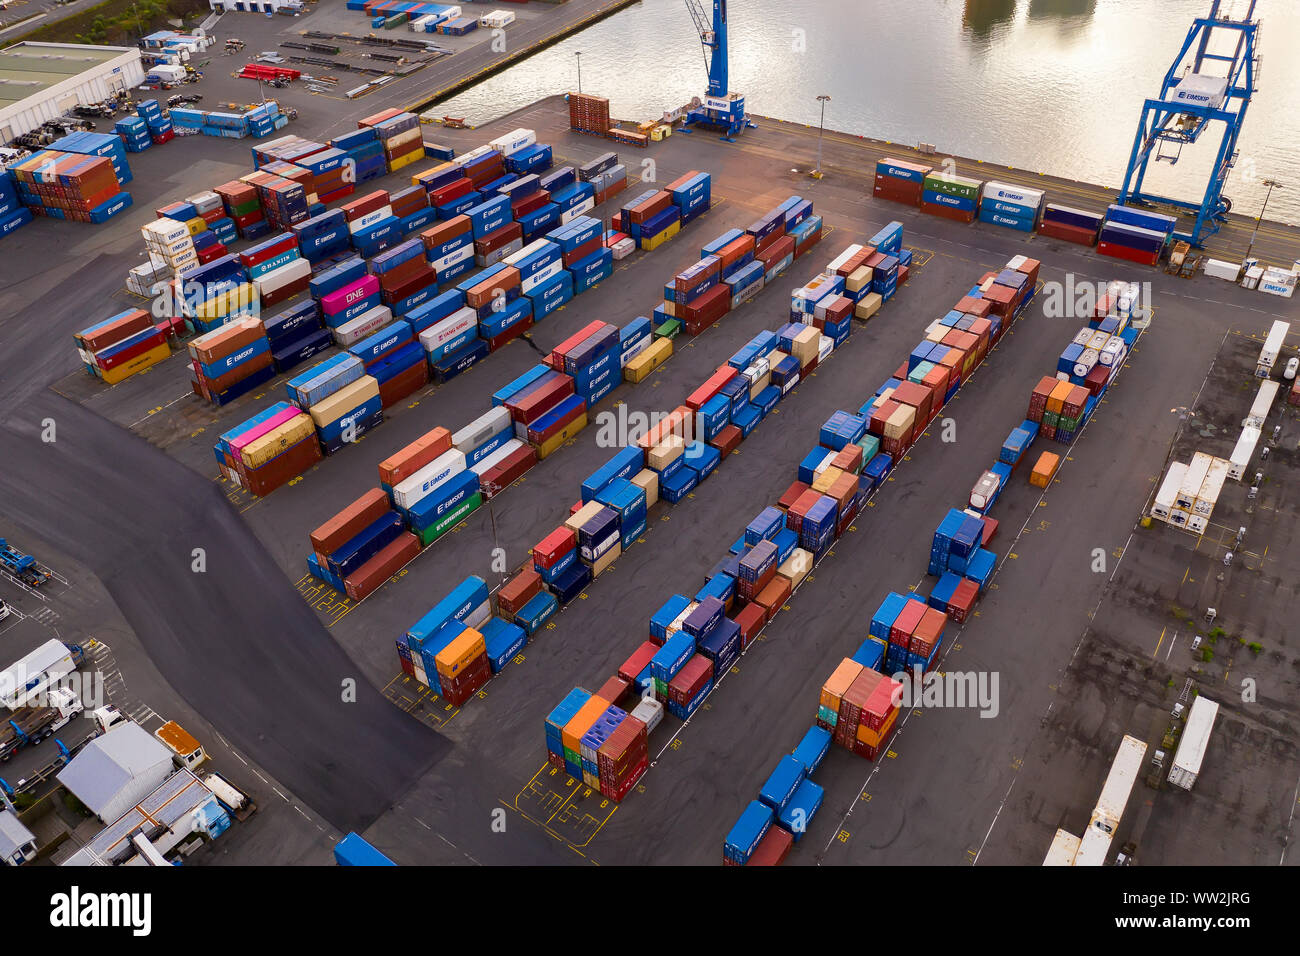 Cars and shipping containers, Reykjavik Harbor, Iceland Stock Photo